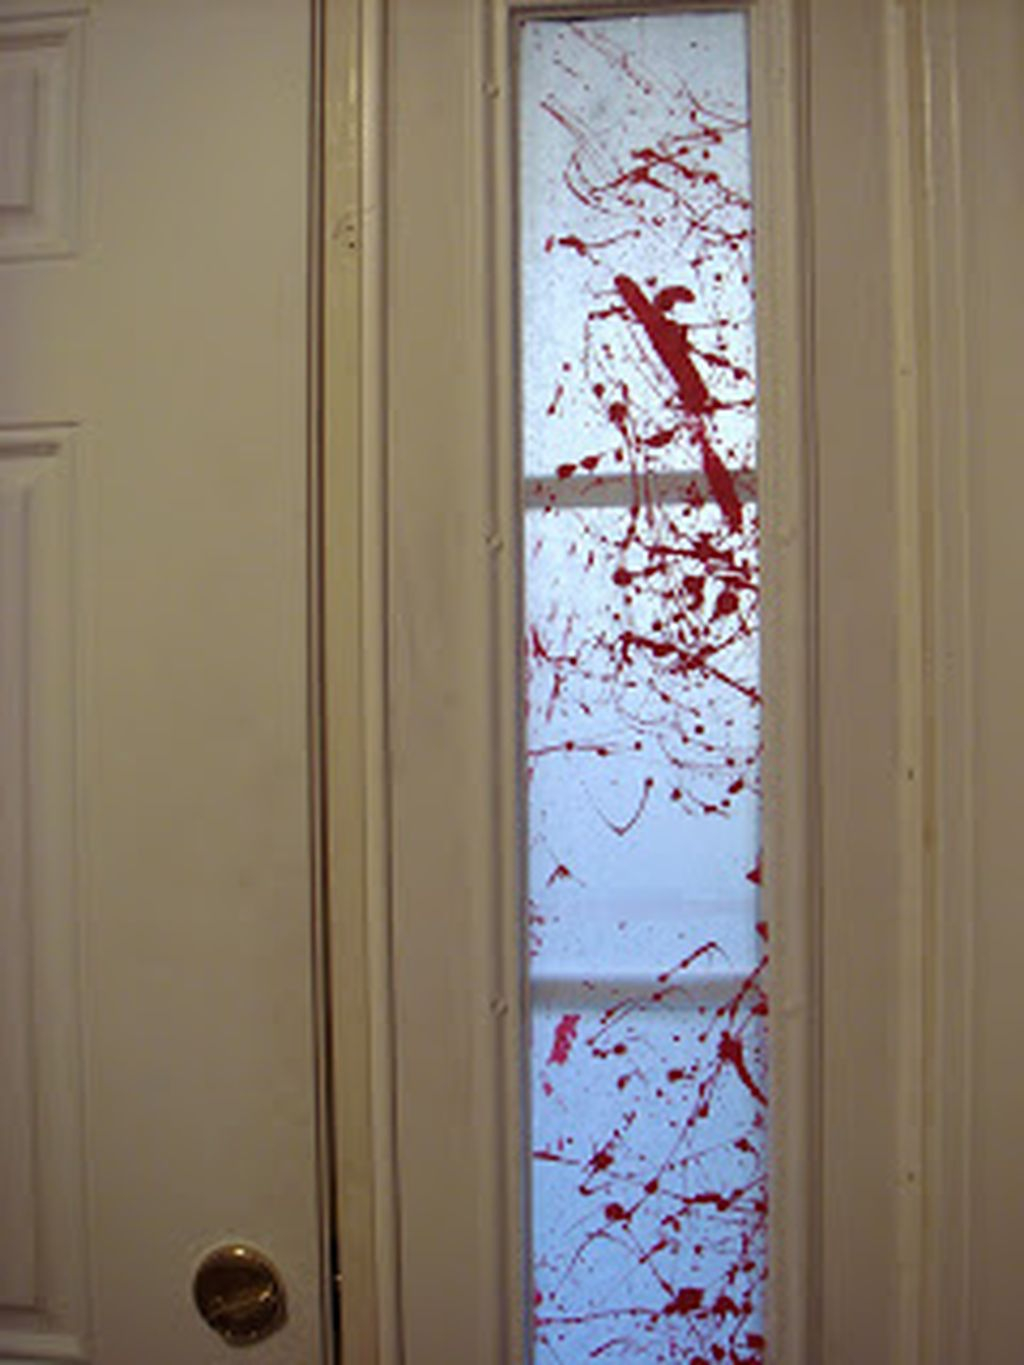 Scary But Creative DIY Halloween Window Decorations Ideas You Should Try 29